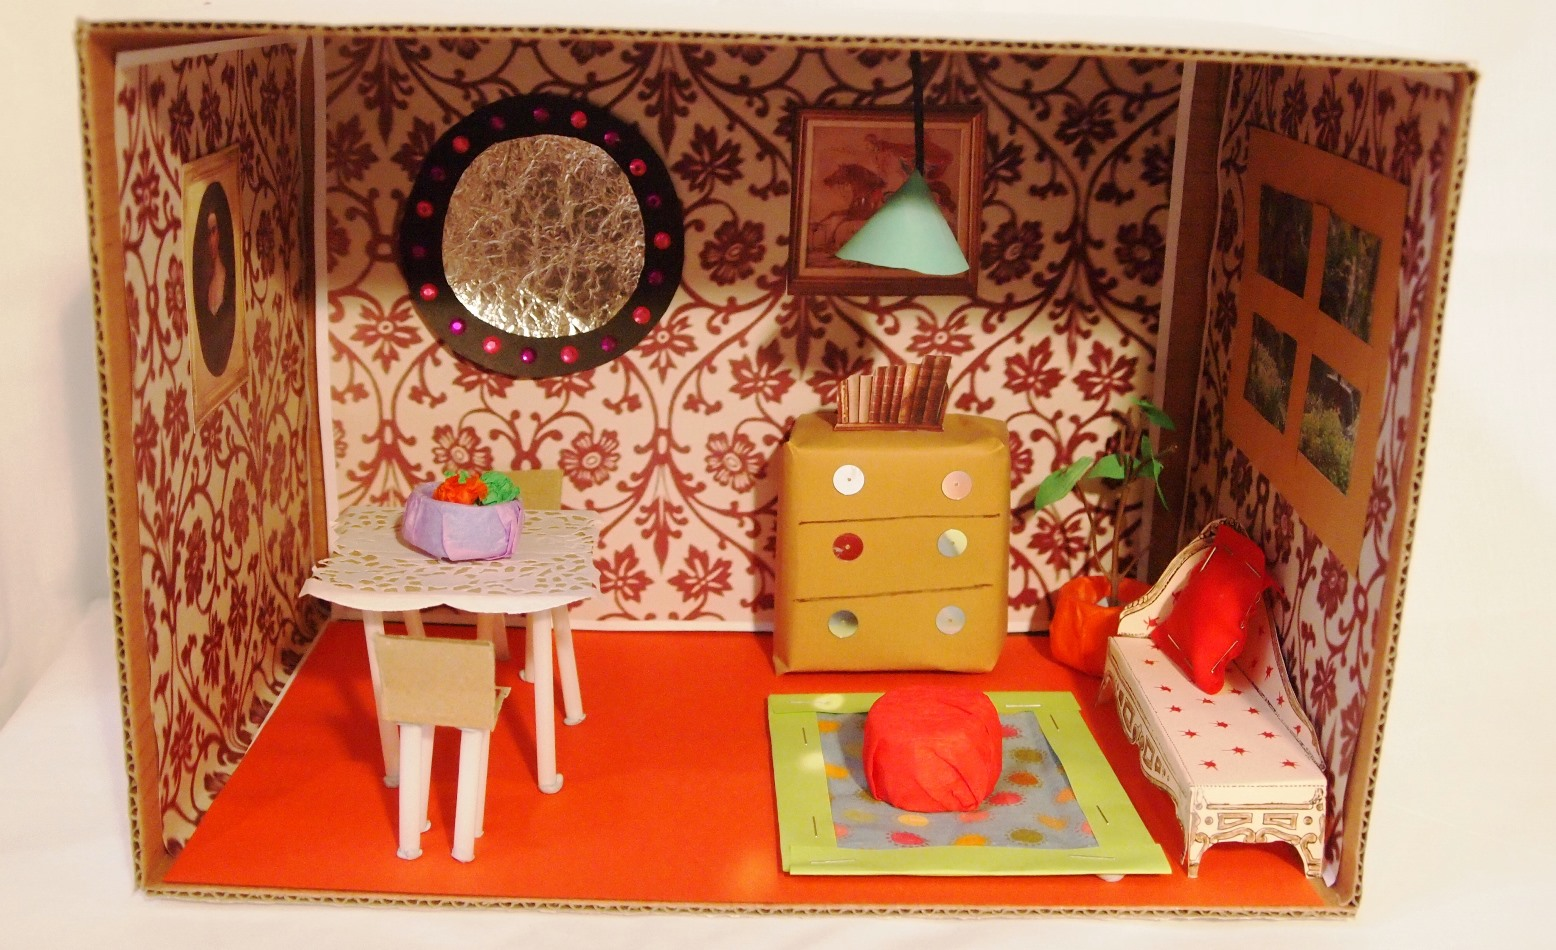 make and take room in a box vaucluse house sydney living museums. Black Bedroom Furniture Sets. Home Design Ideas